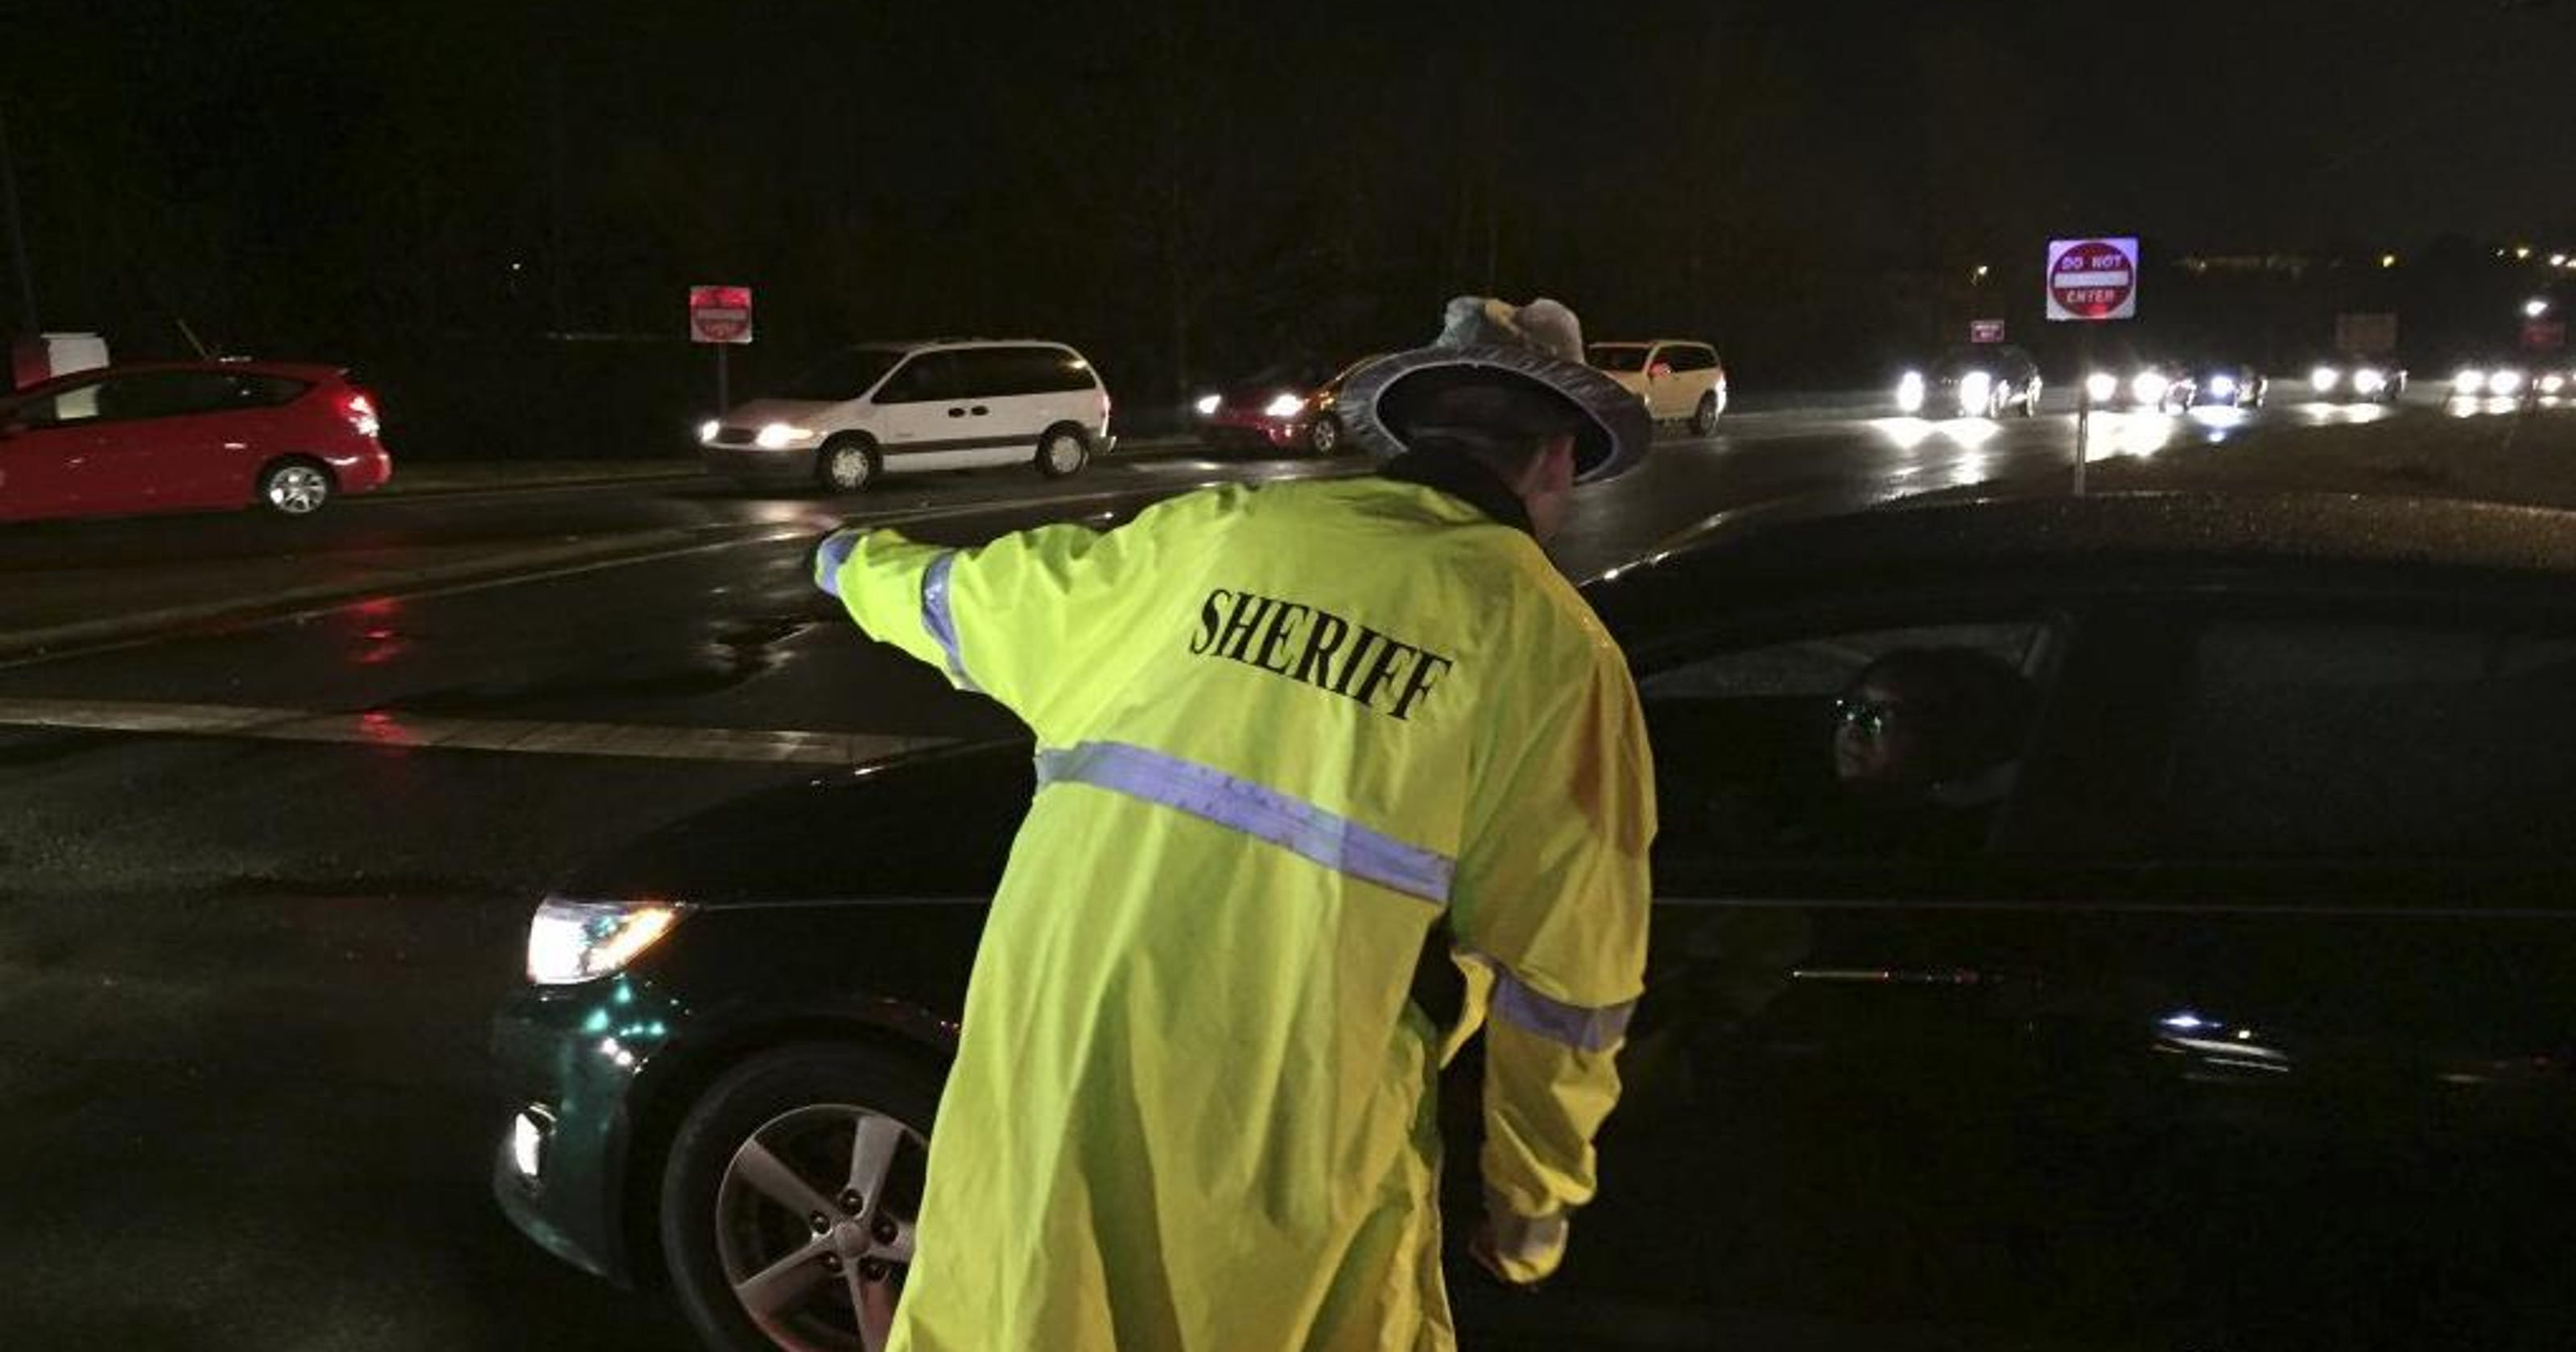 Cops: Over 100 cars involved in wreck on I-40 in N C